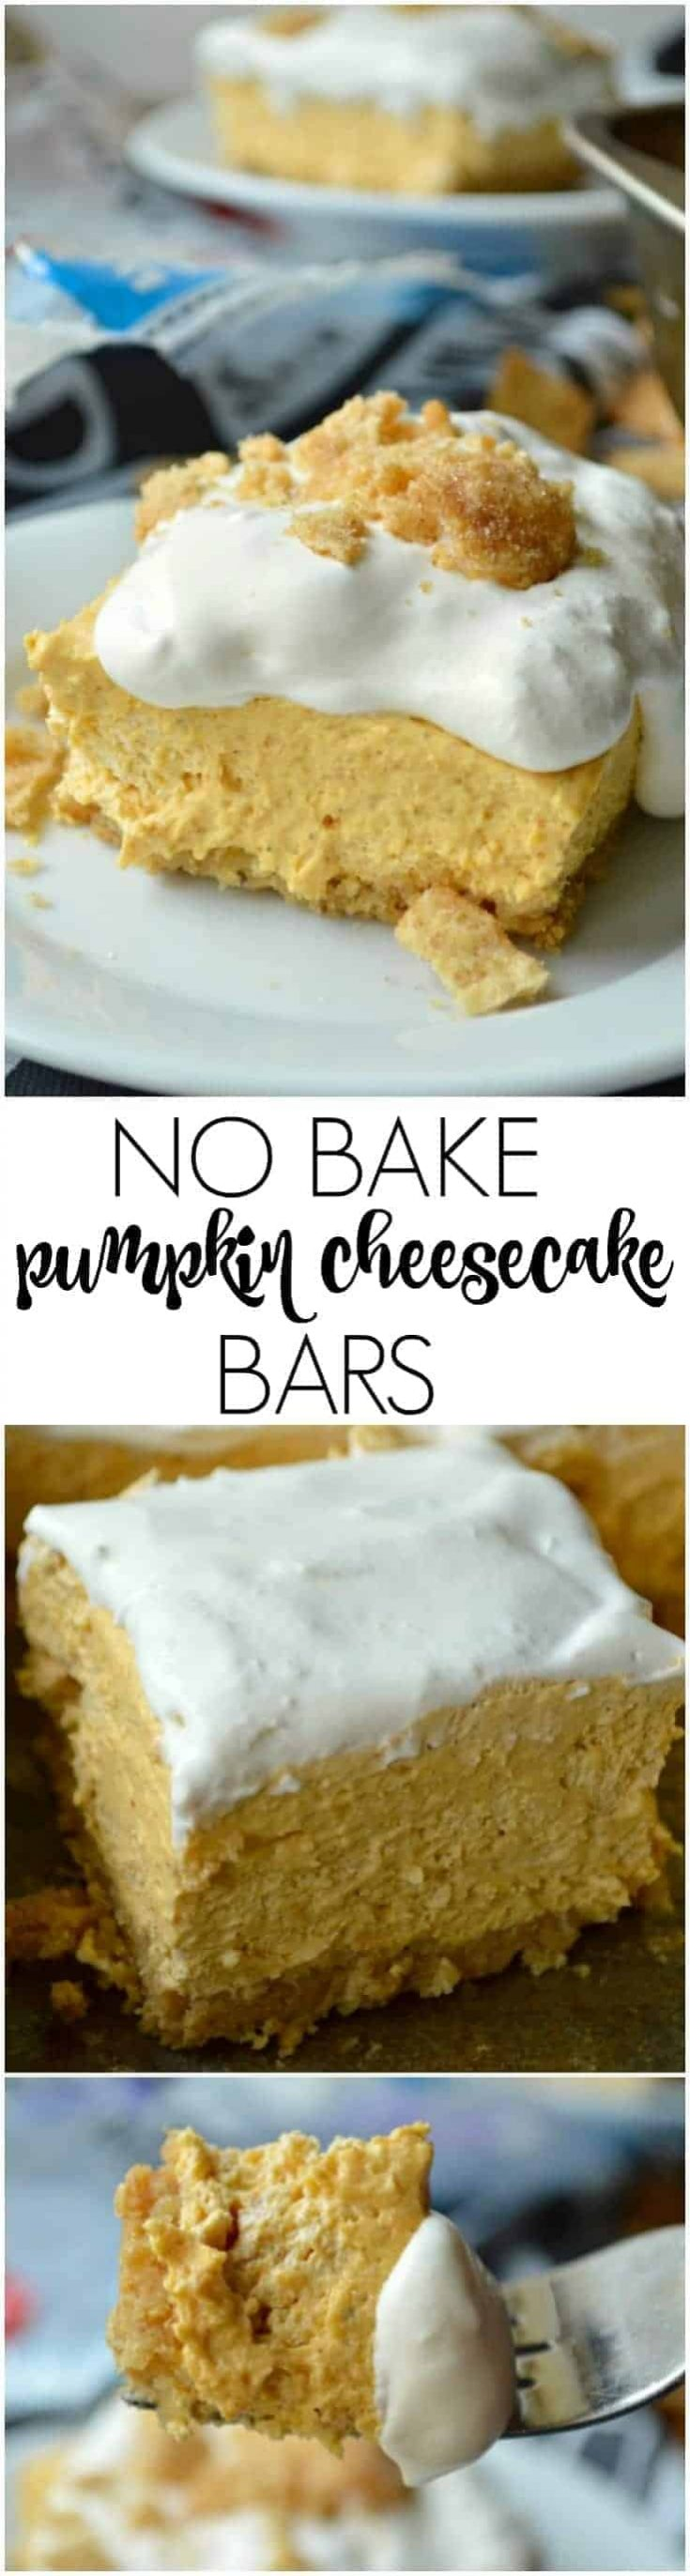 These easy No Bake Pumpkin Cheesecake Bars have a cinnamon sugar crust that will make you swoon, and require just 15 minutes of work!